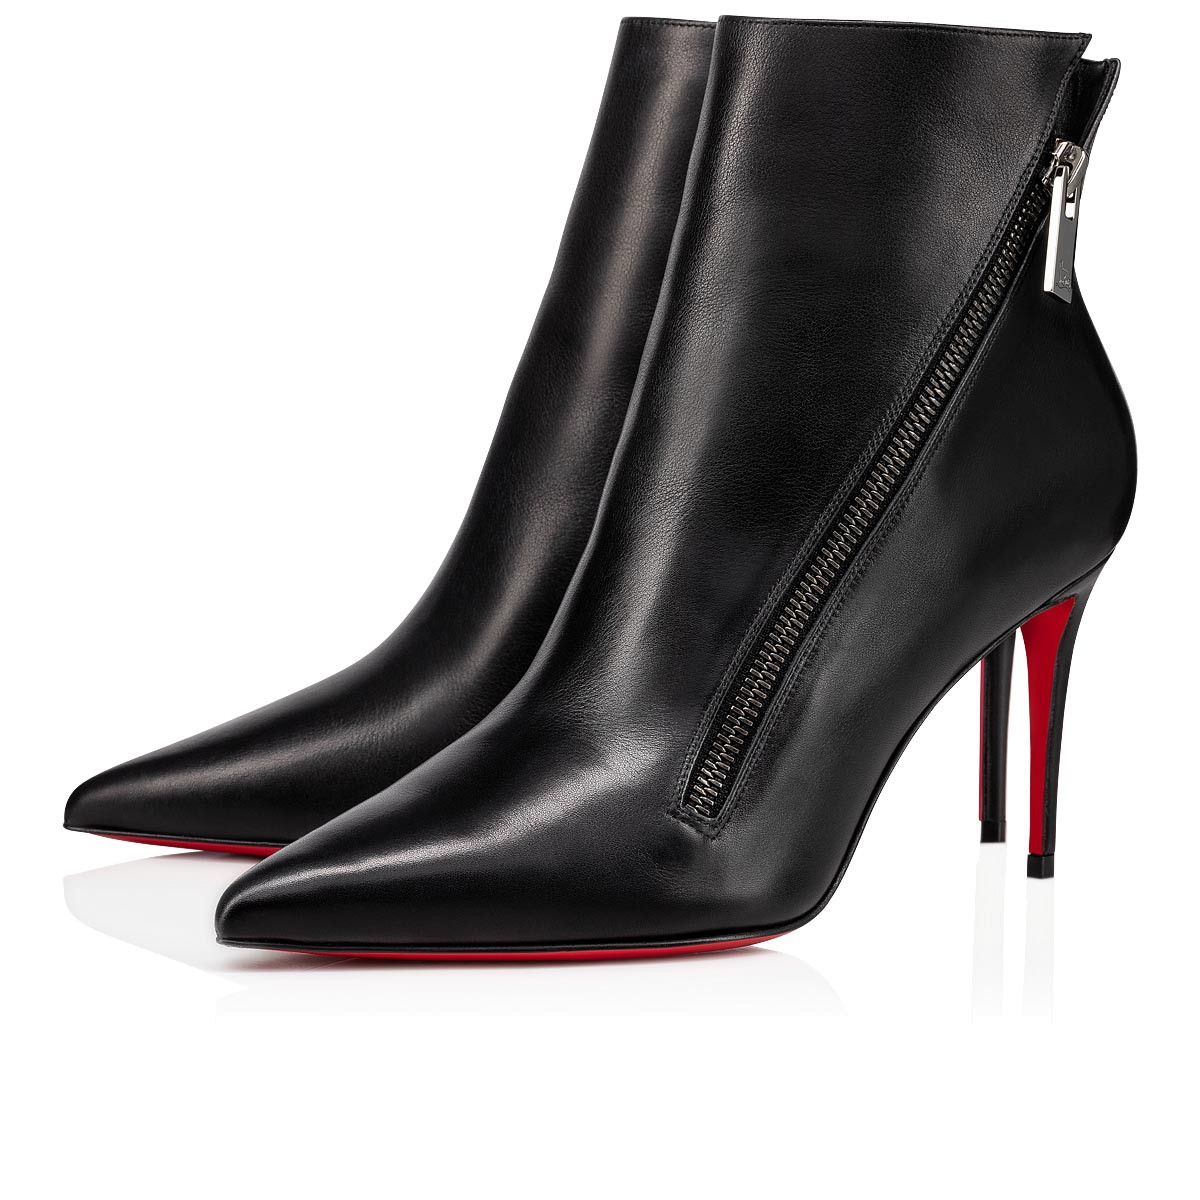 Shoes - Birgikate - Christian Louboutin